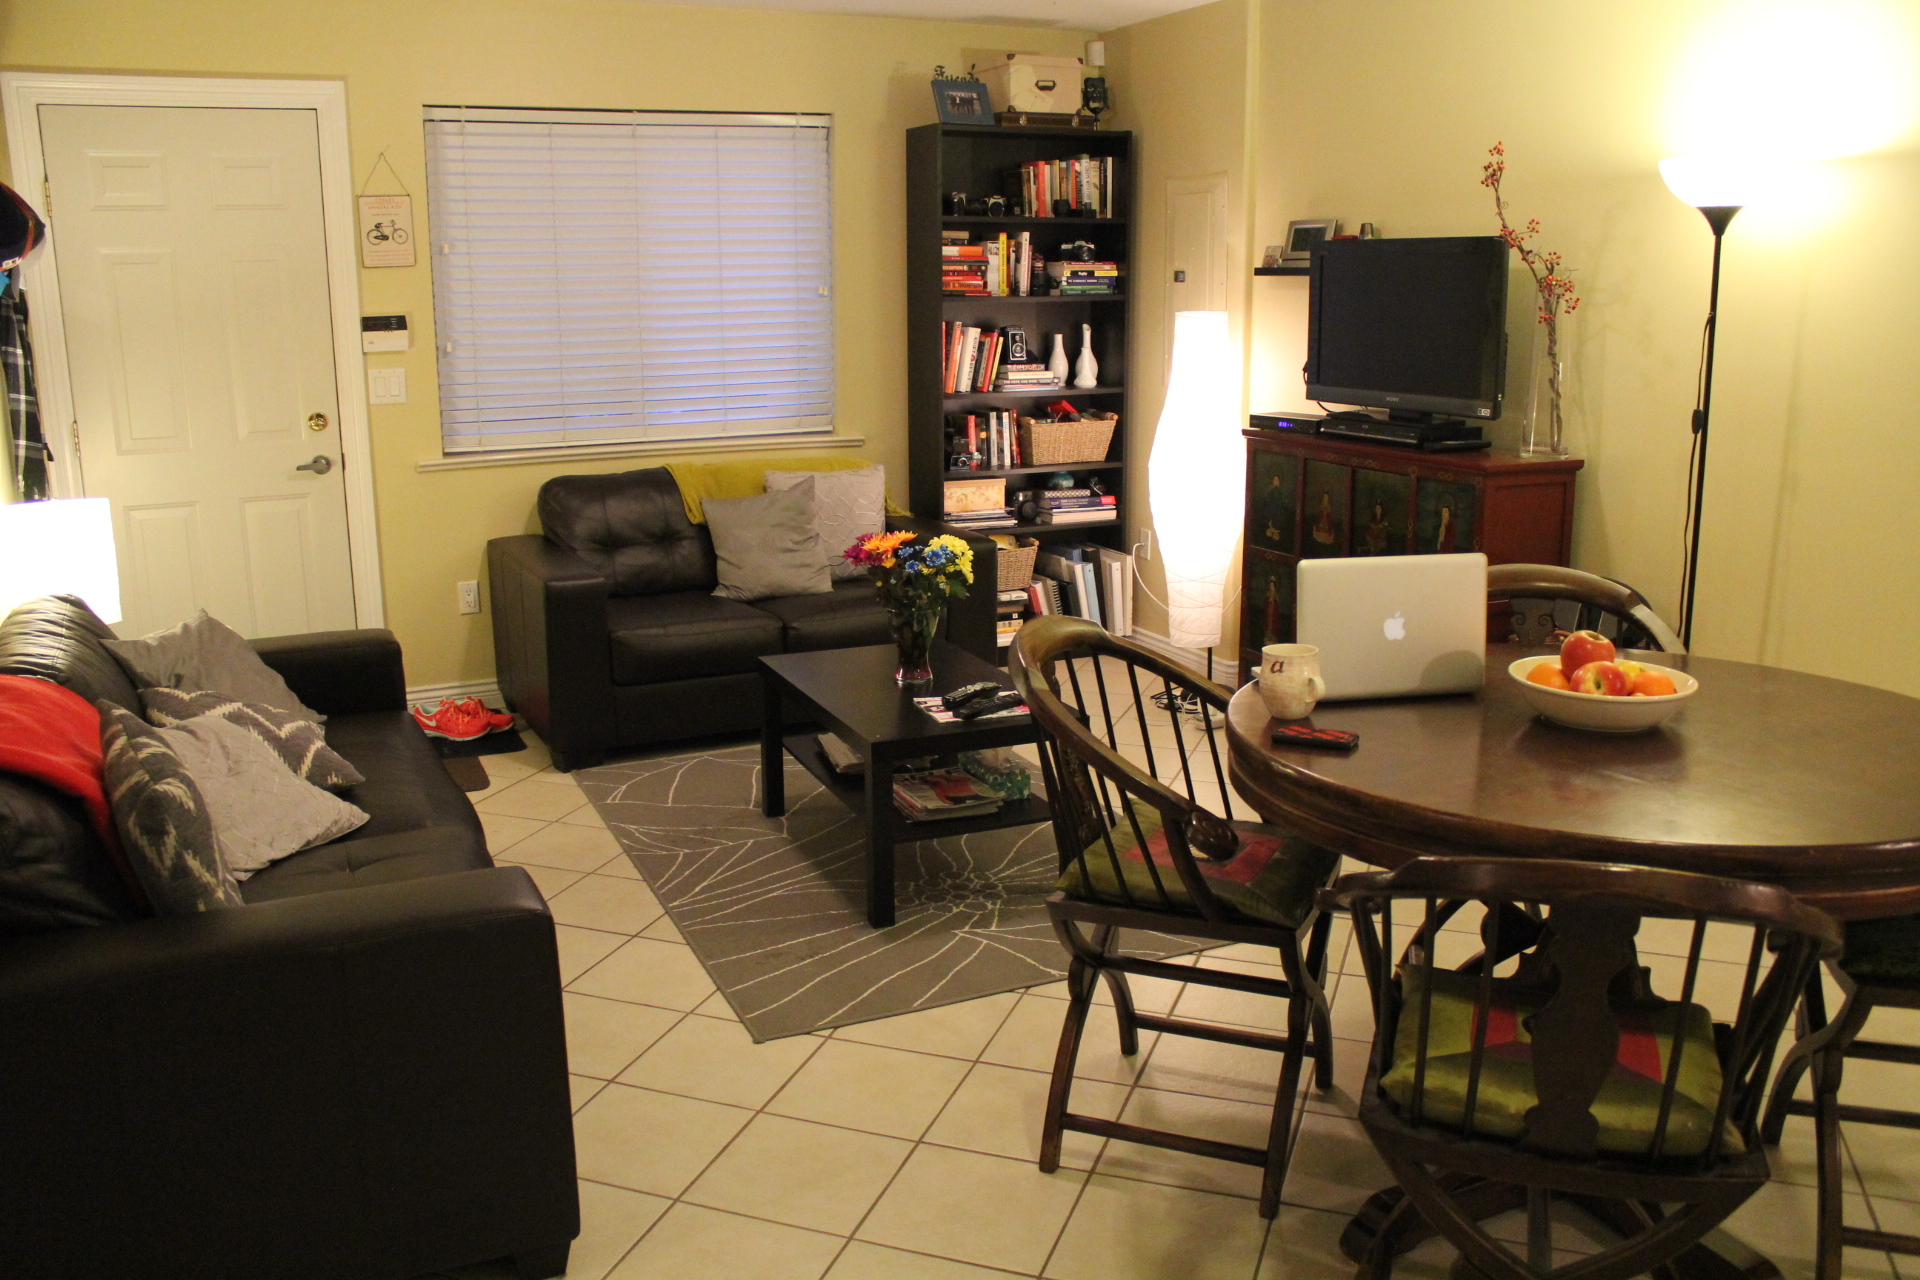 301 moved permanently Pros and cons of living in an apartment